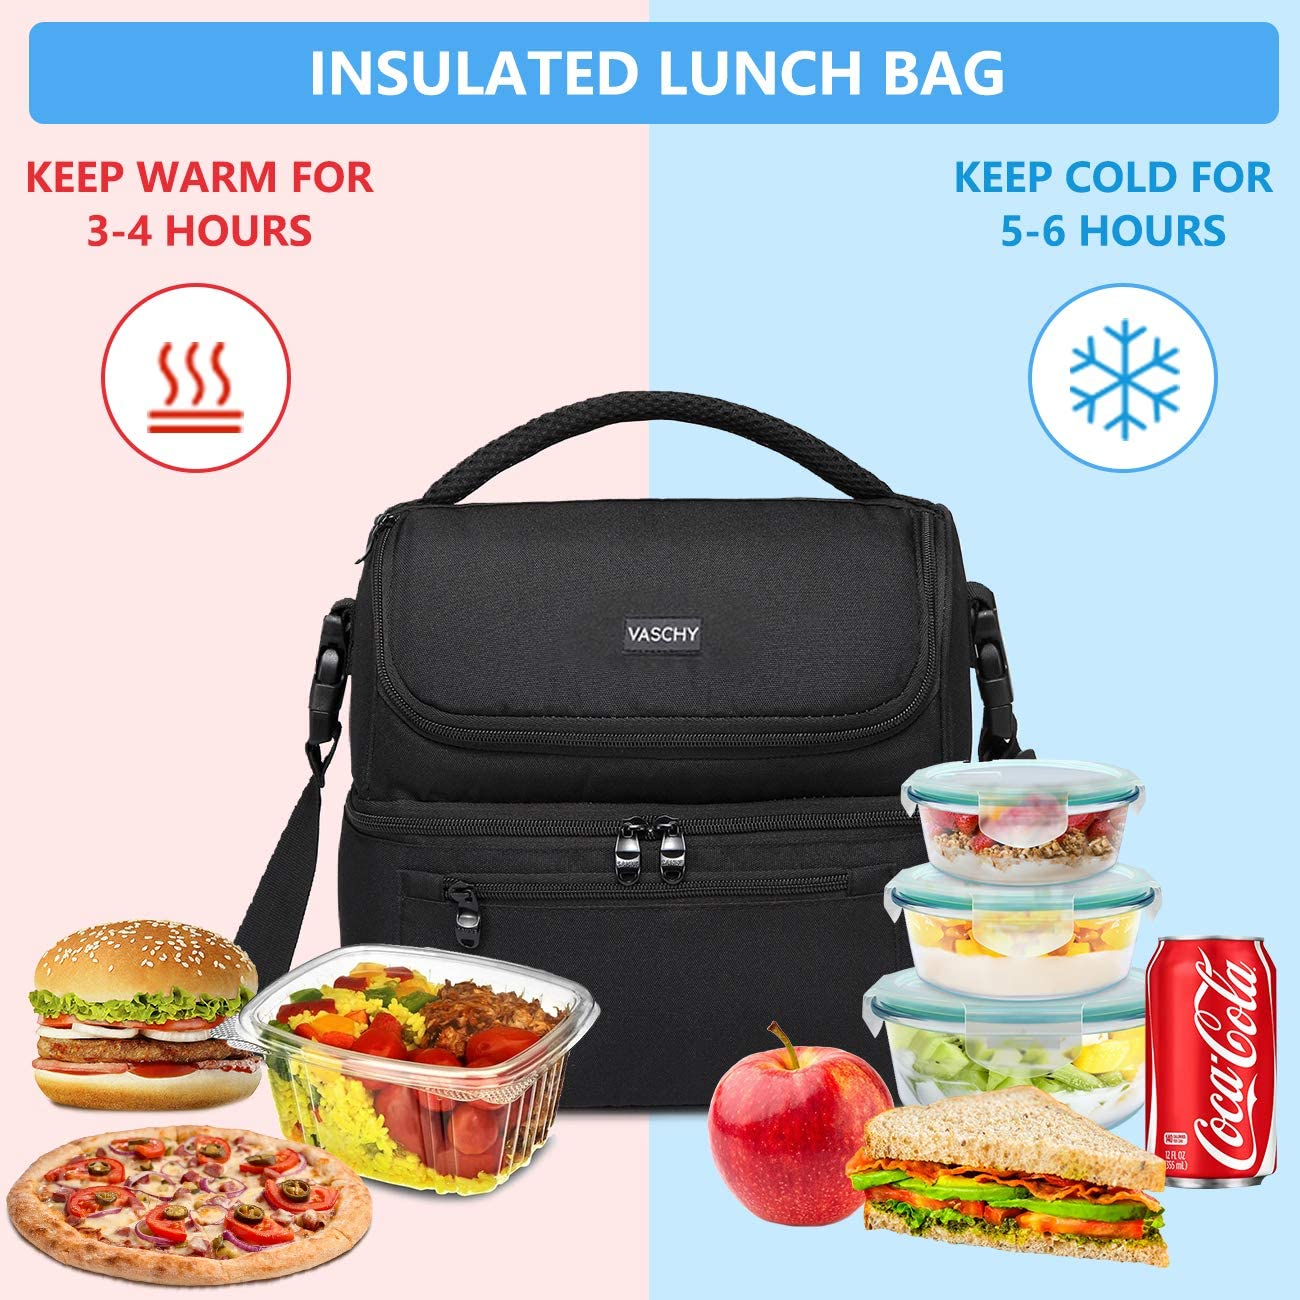 Meilleure sac isotherme repas